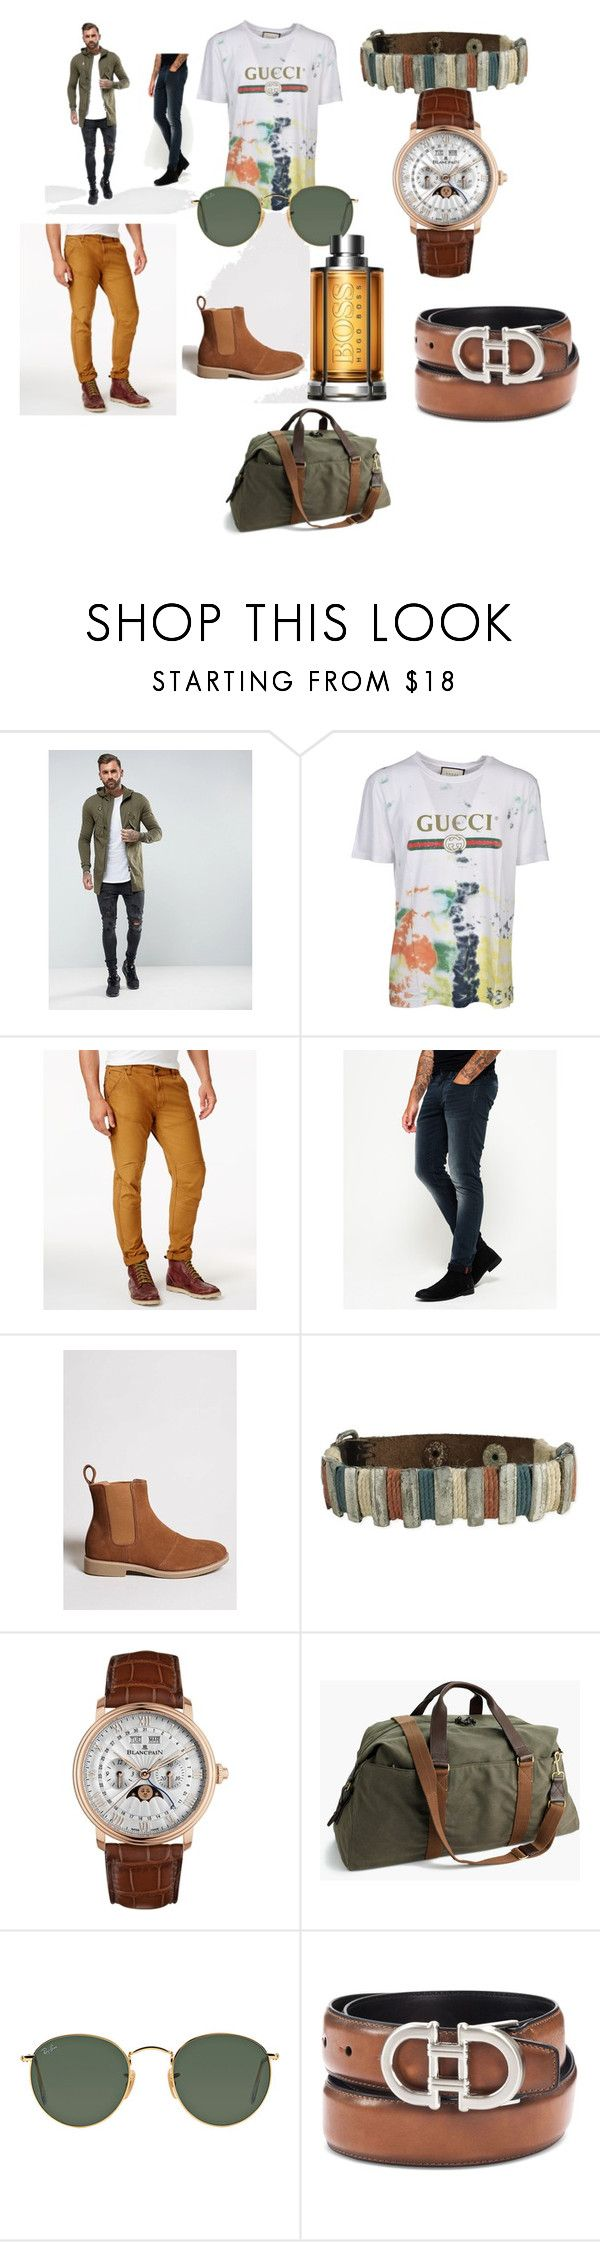 """""""#chick#trend#moda#men#"""" by hannazakaria ❤ liked on Polyvore featuring Religion Clothing, Gucci, American Rag Cie, Superdry, 21 Men, Blancpain, J.Crew, Ray-Ban, Alfani and HUGO"""